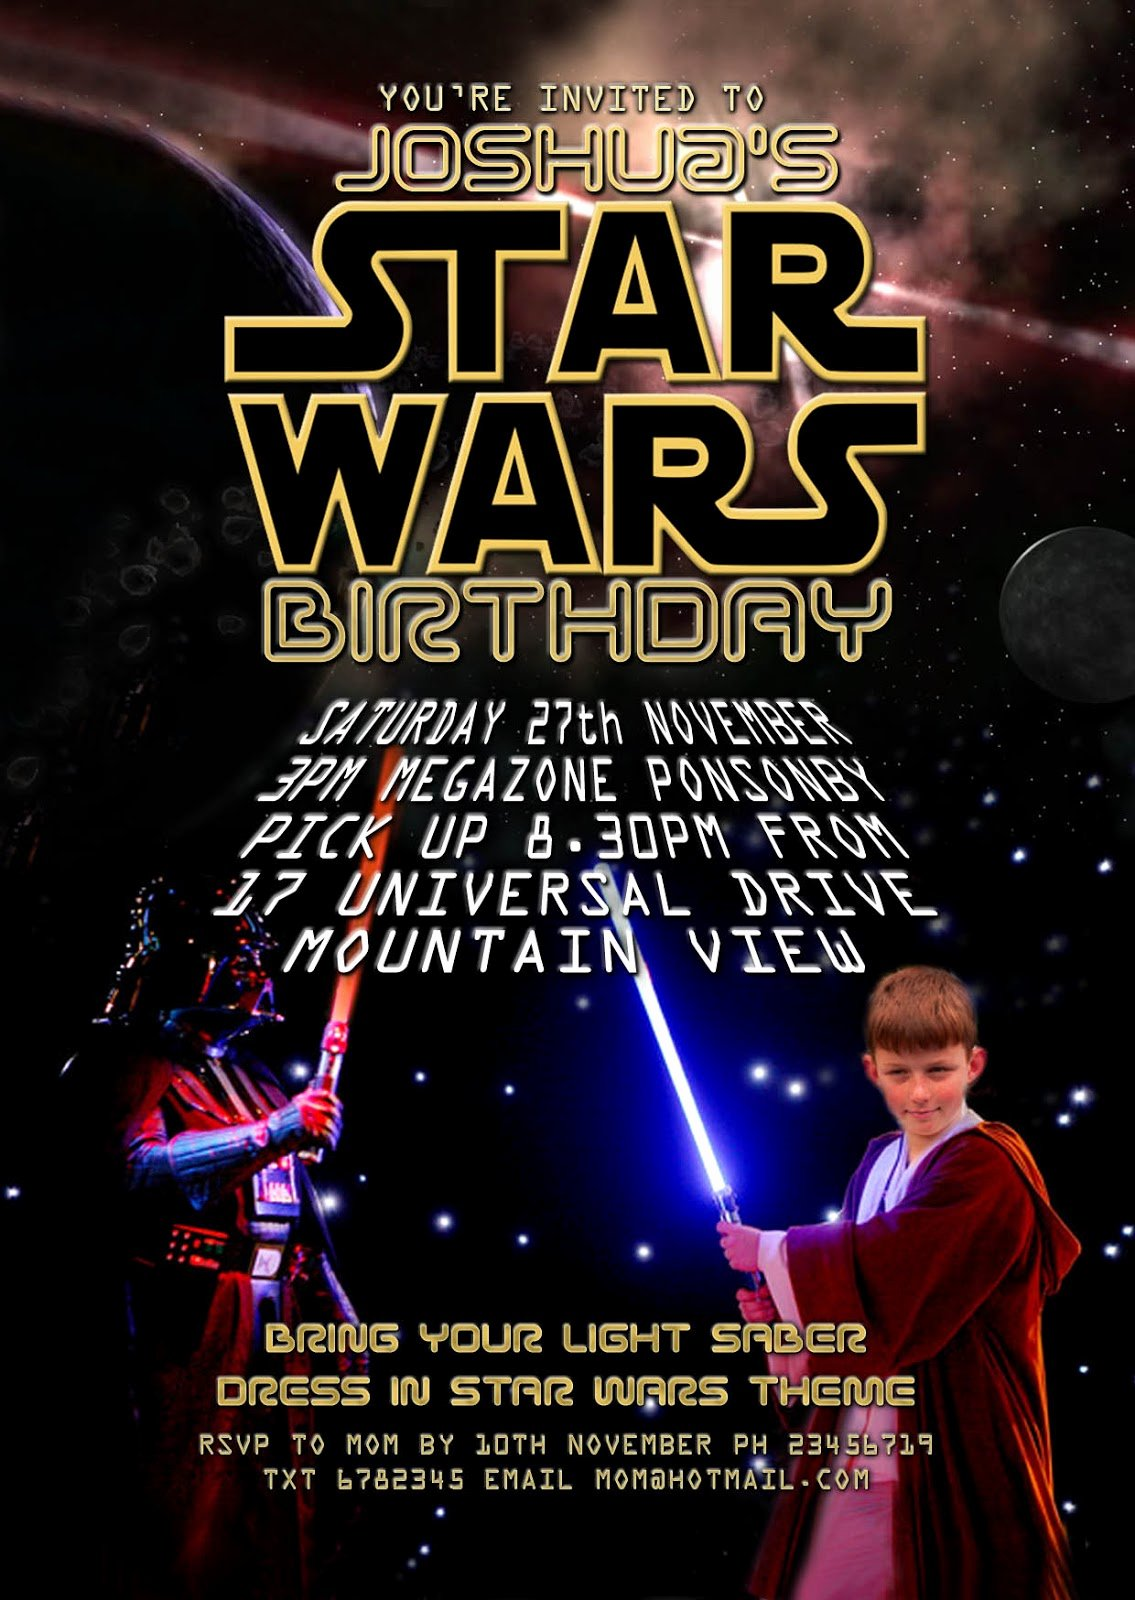 Star Wars Party Invitation Lovely Free Kids Party Invitations Star Wars Party Invitation New